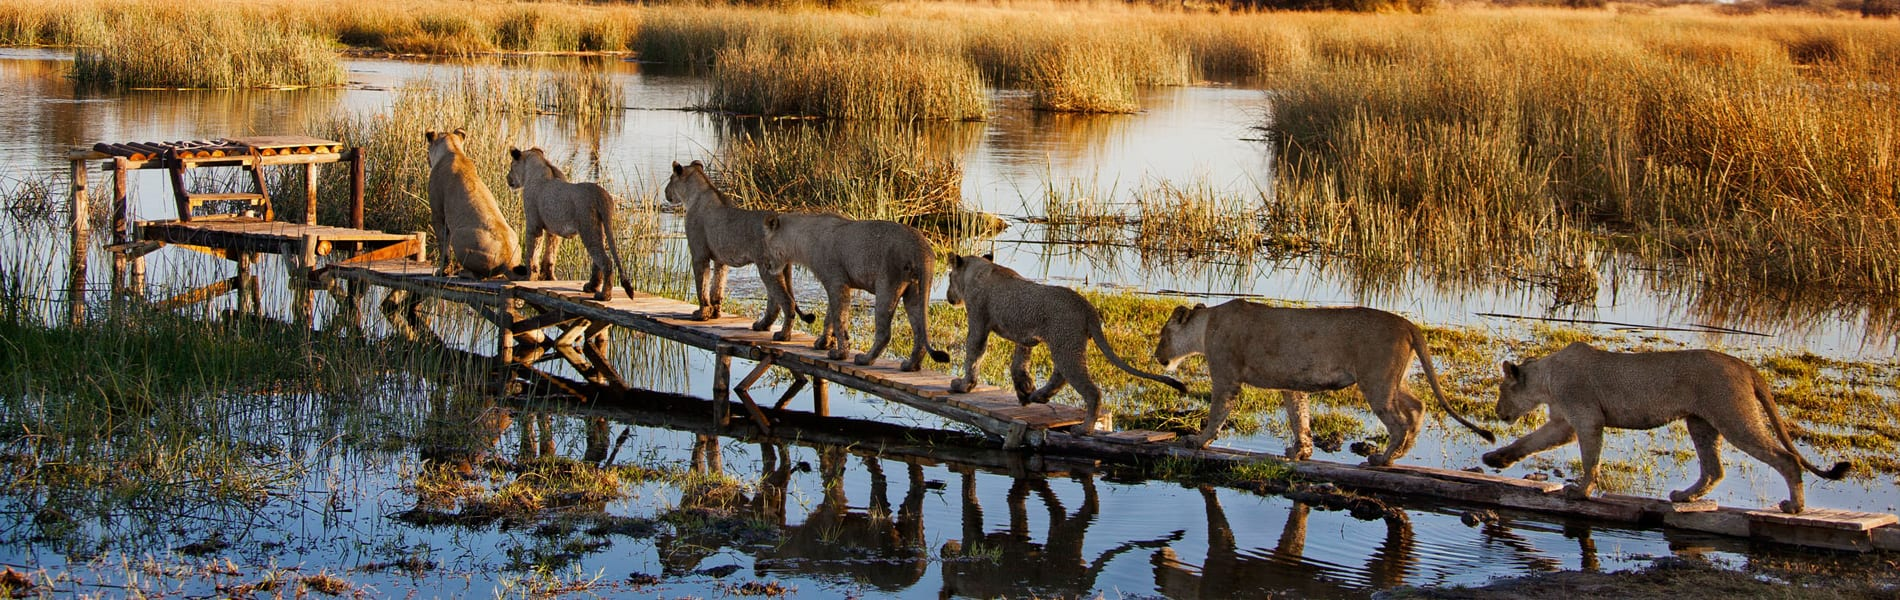 Okavango Delta accommodatie